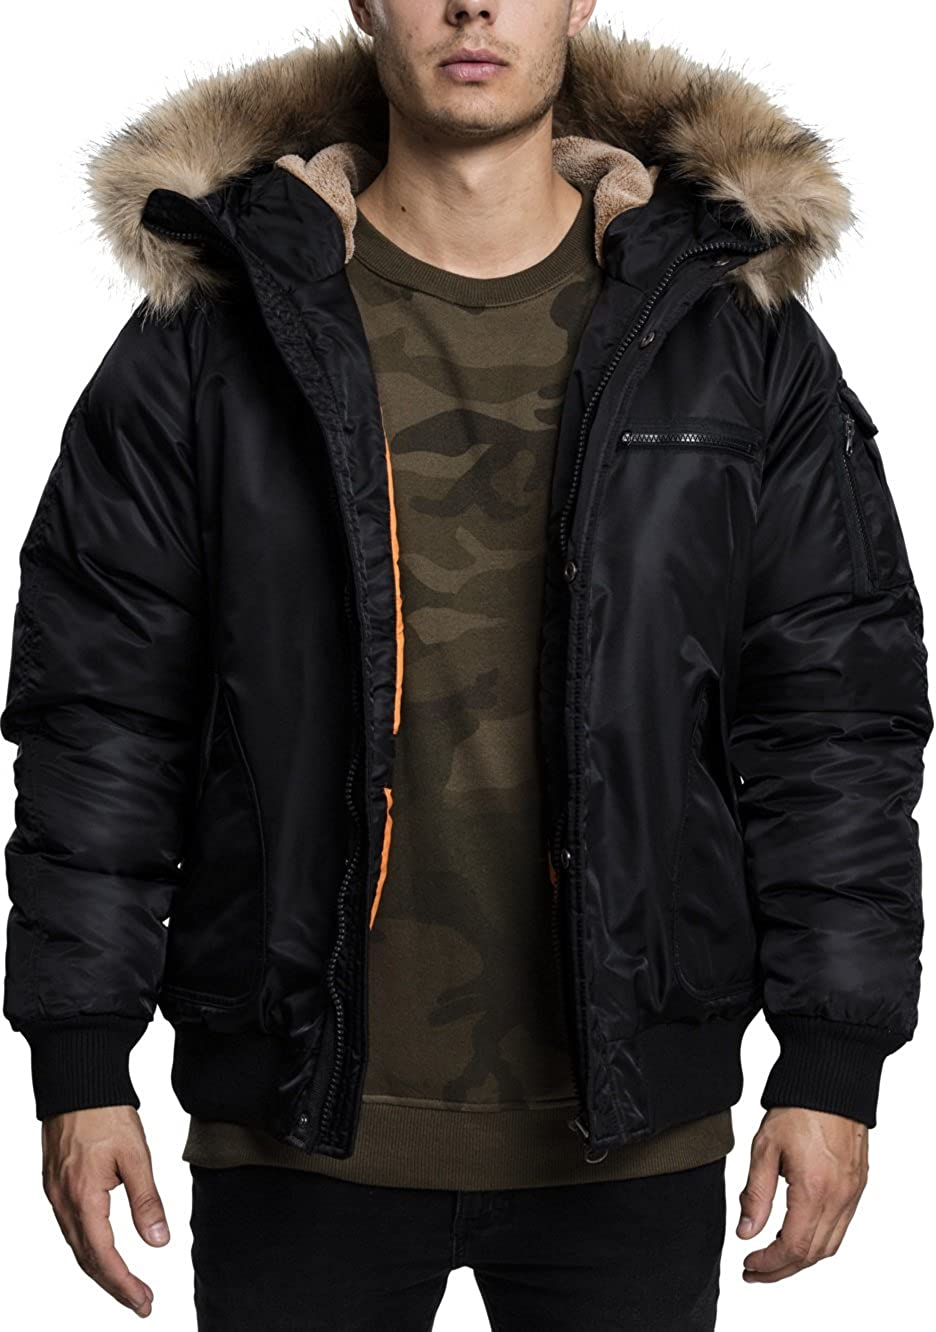 TALLA L. Urban Classics Hooded Heavy Fake Fur Bomber Jacket Chaqueta Hombre